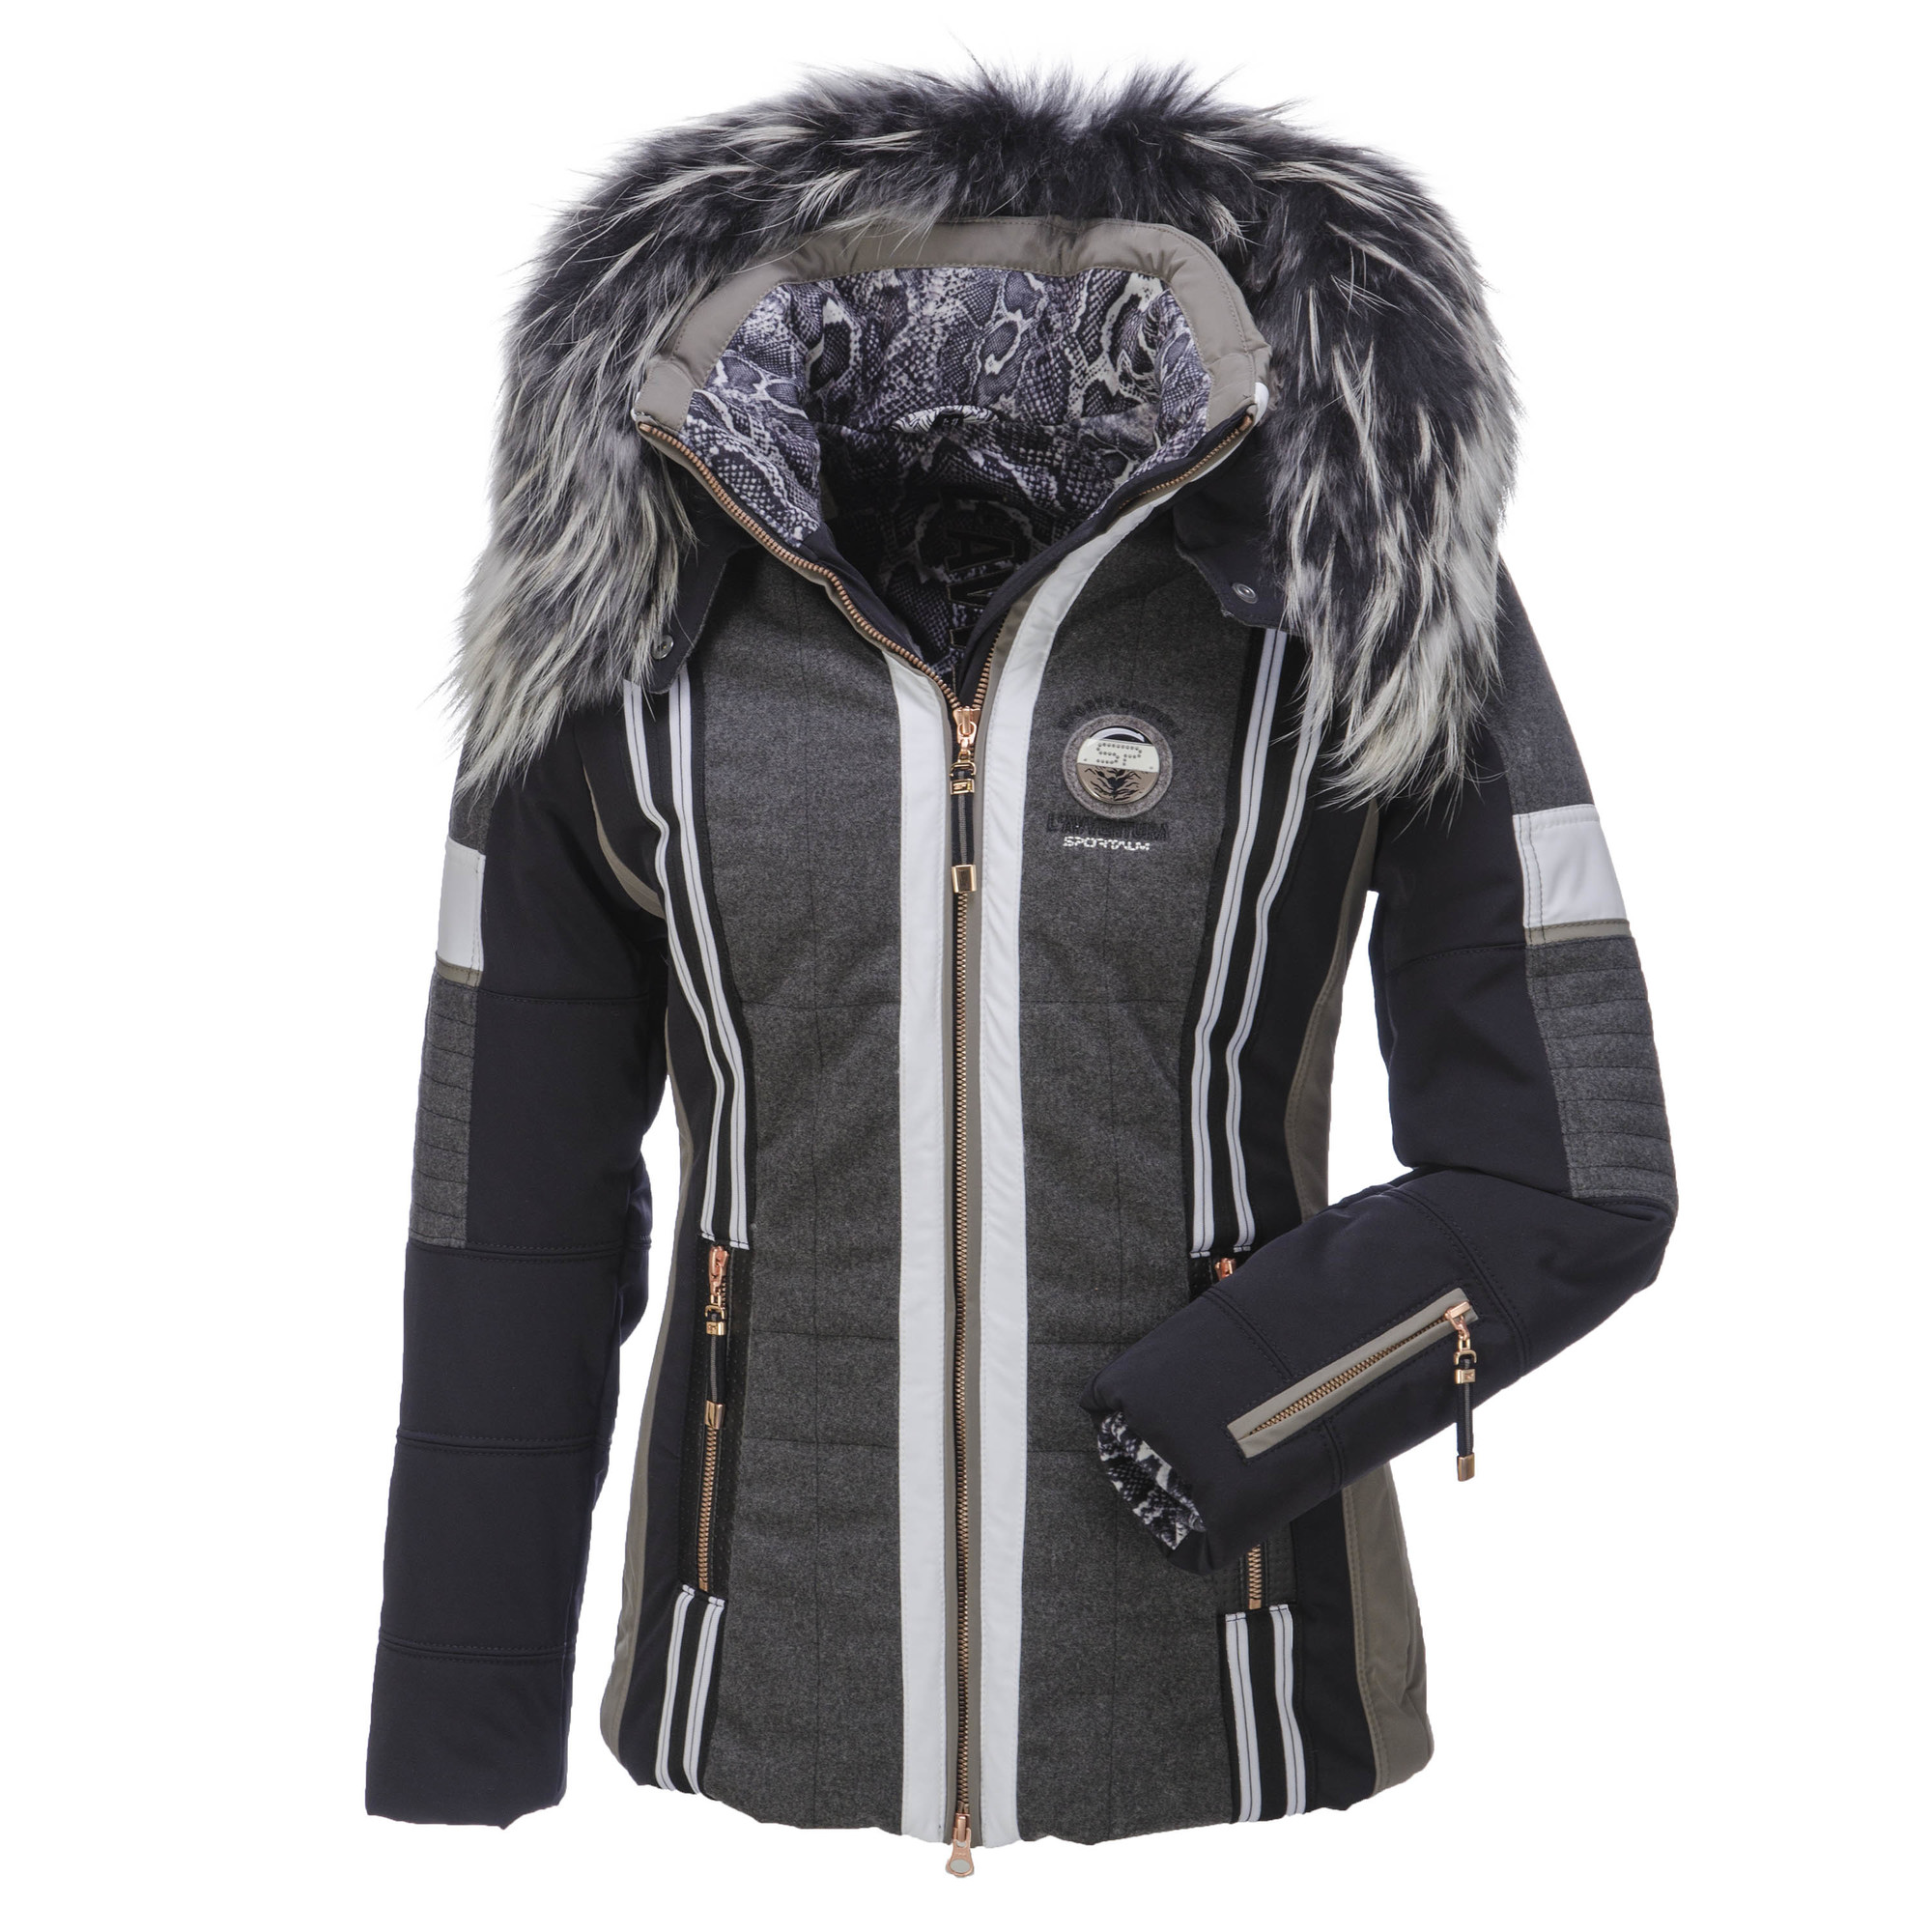 sportalm kitzb hel saiwa ski jacket with fur collar woman black. Black Bedroom Furniture Sets. Home Design Ideas